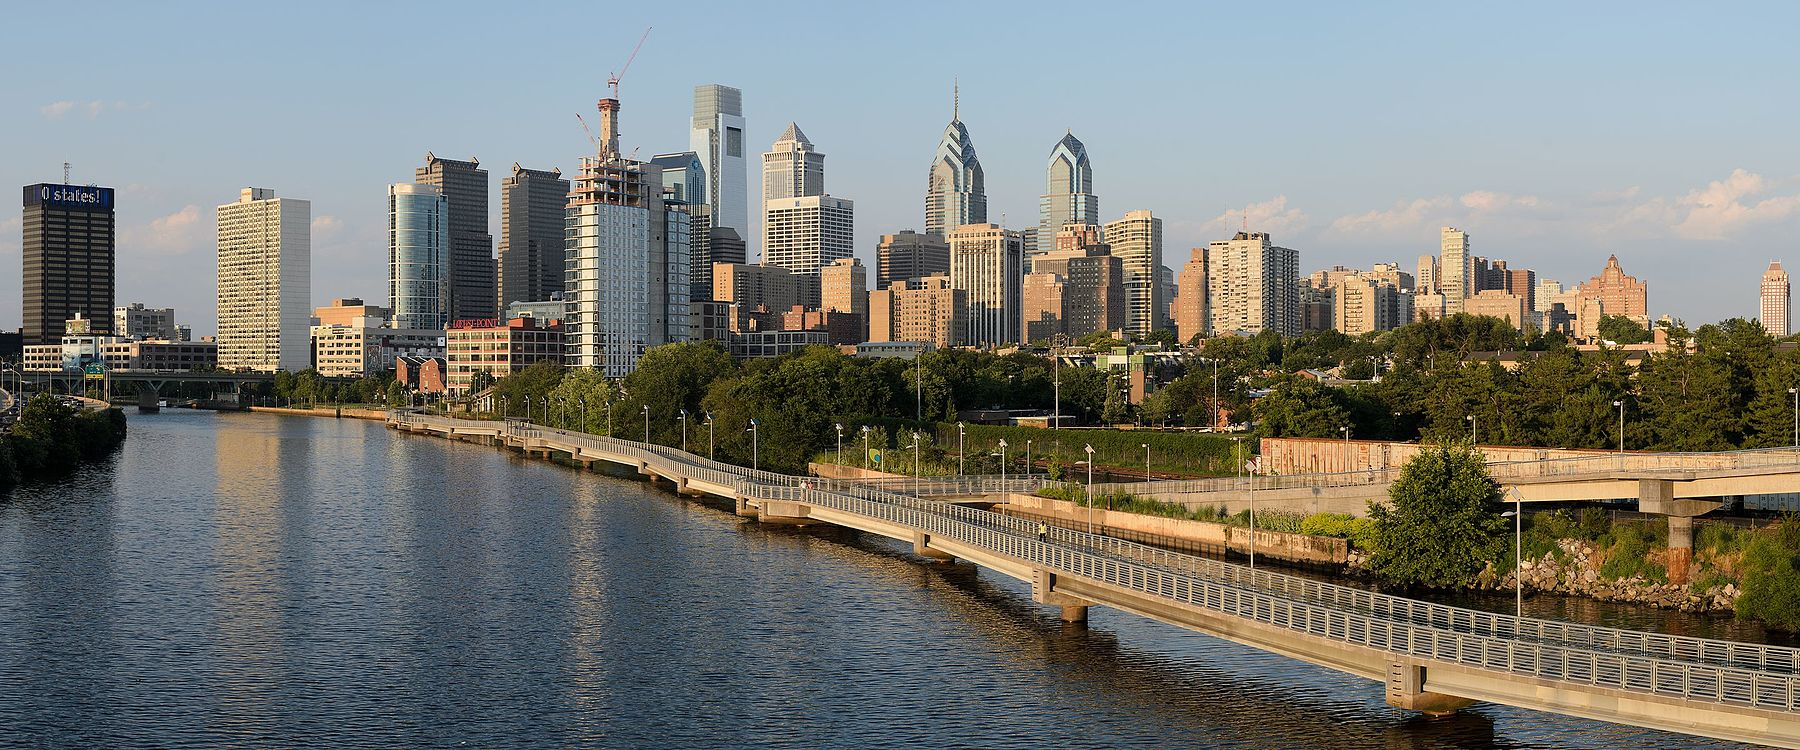 IEEE IMS in Philadelphia, USA, June 10-15 2018